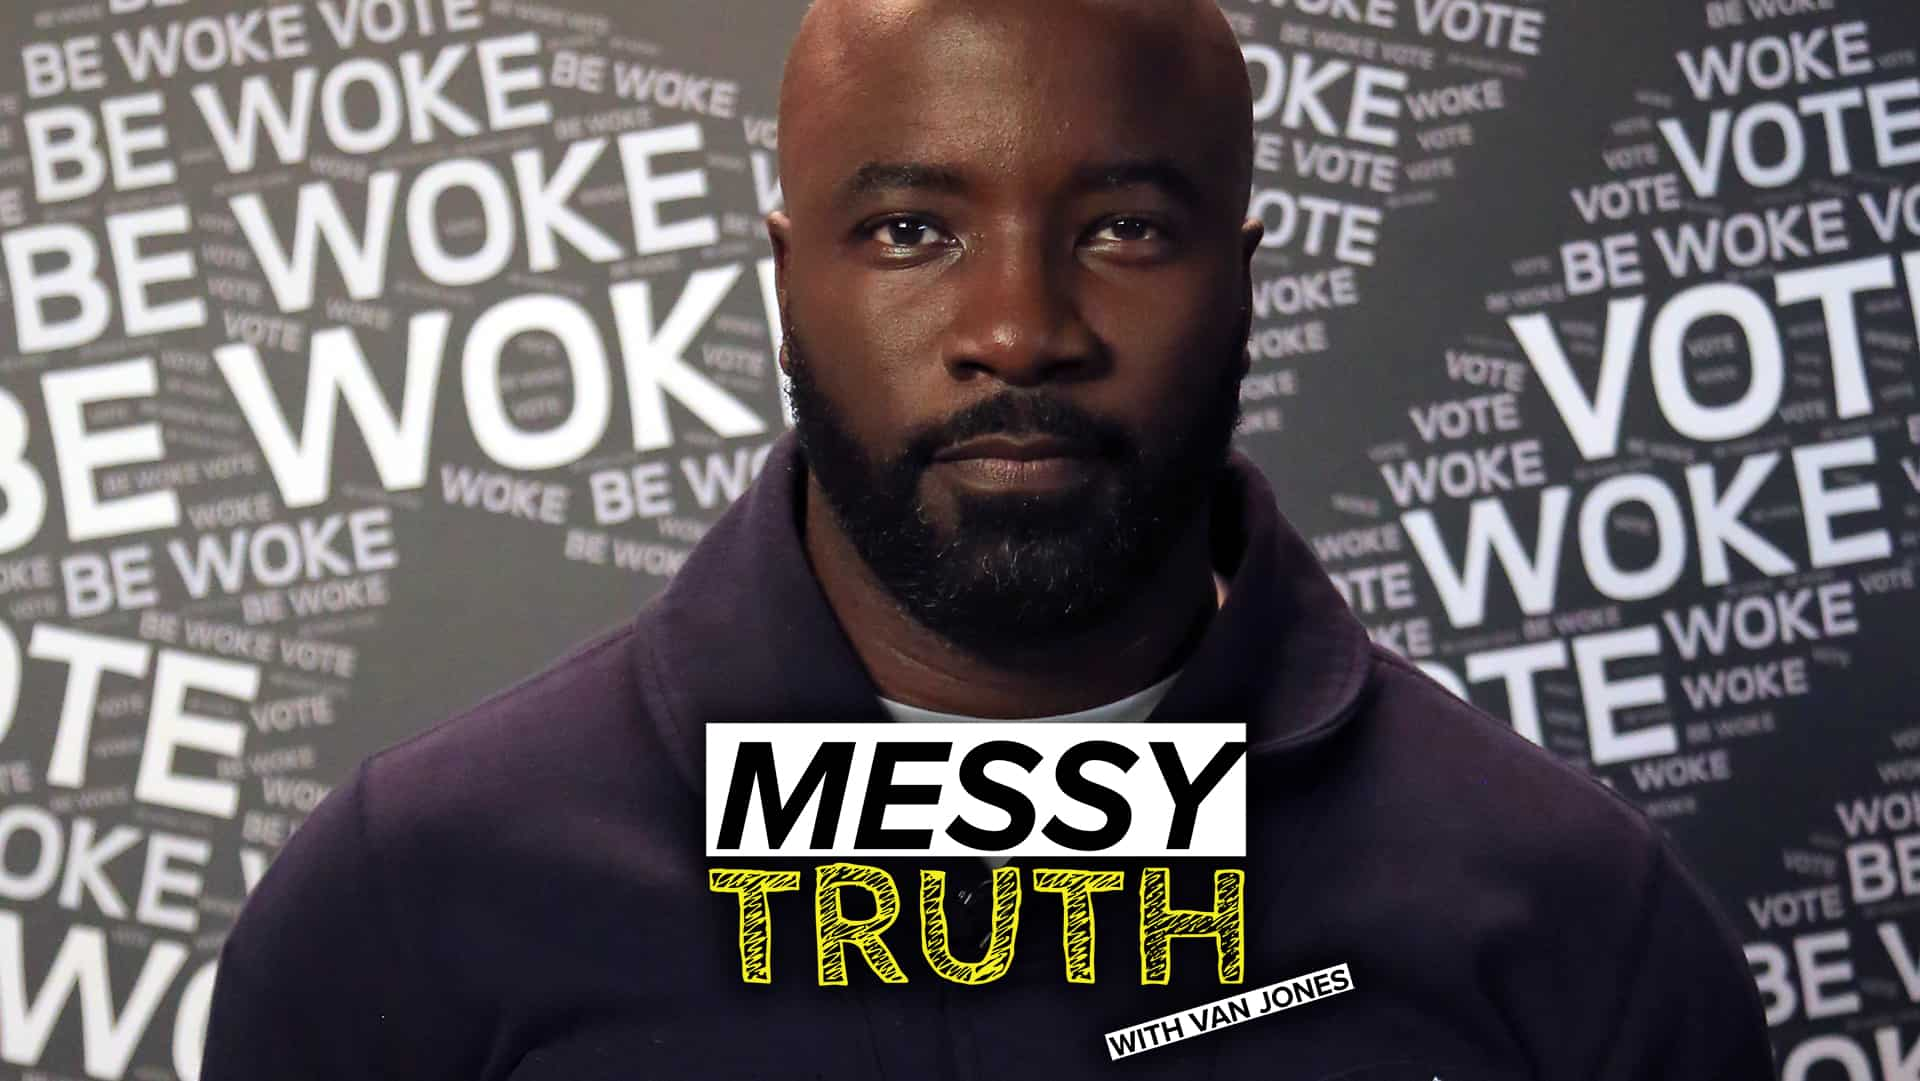 Be Woke.Vote presents Luke Cage... Mike Colter